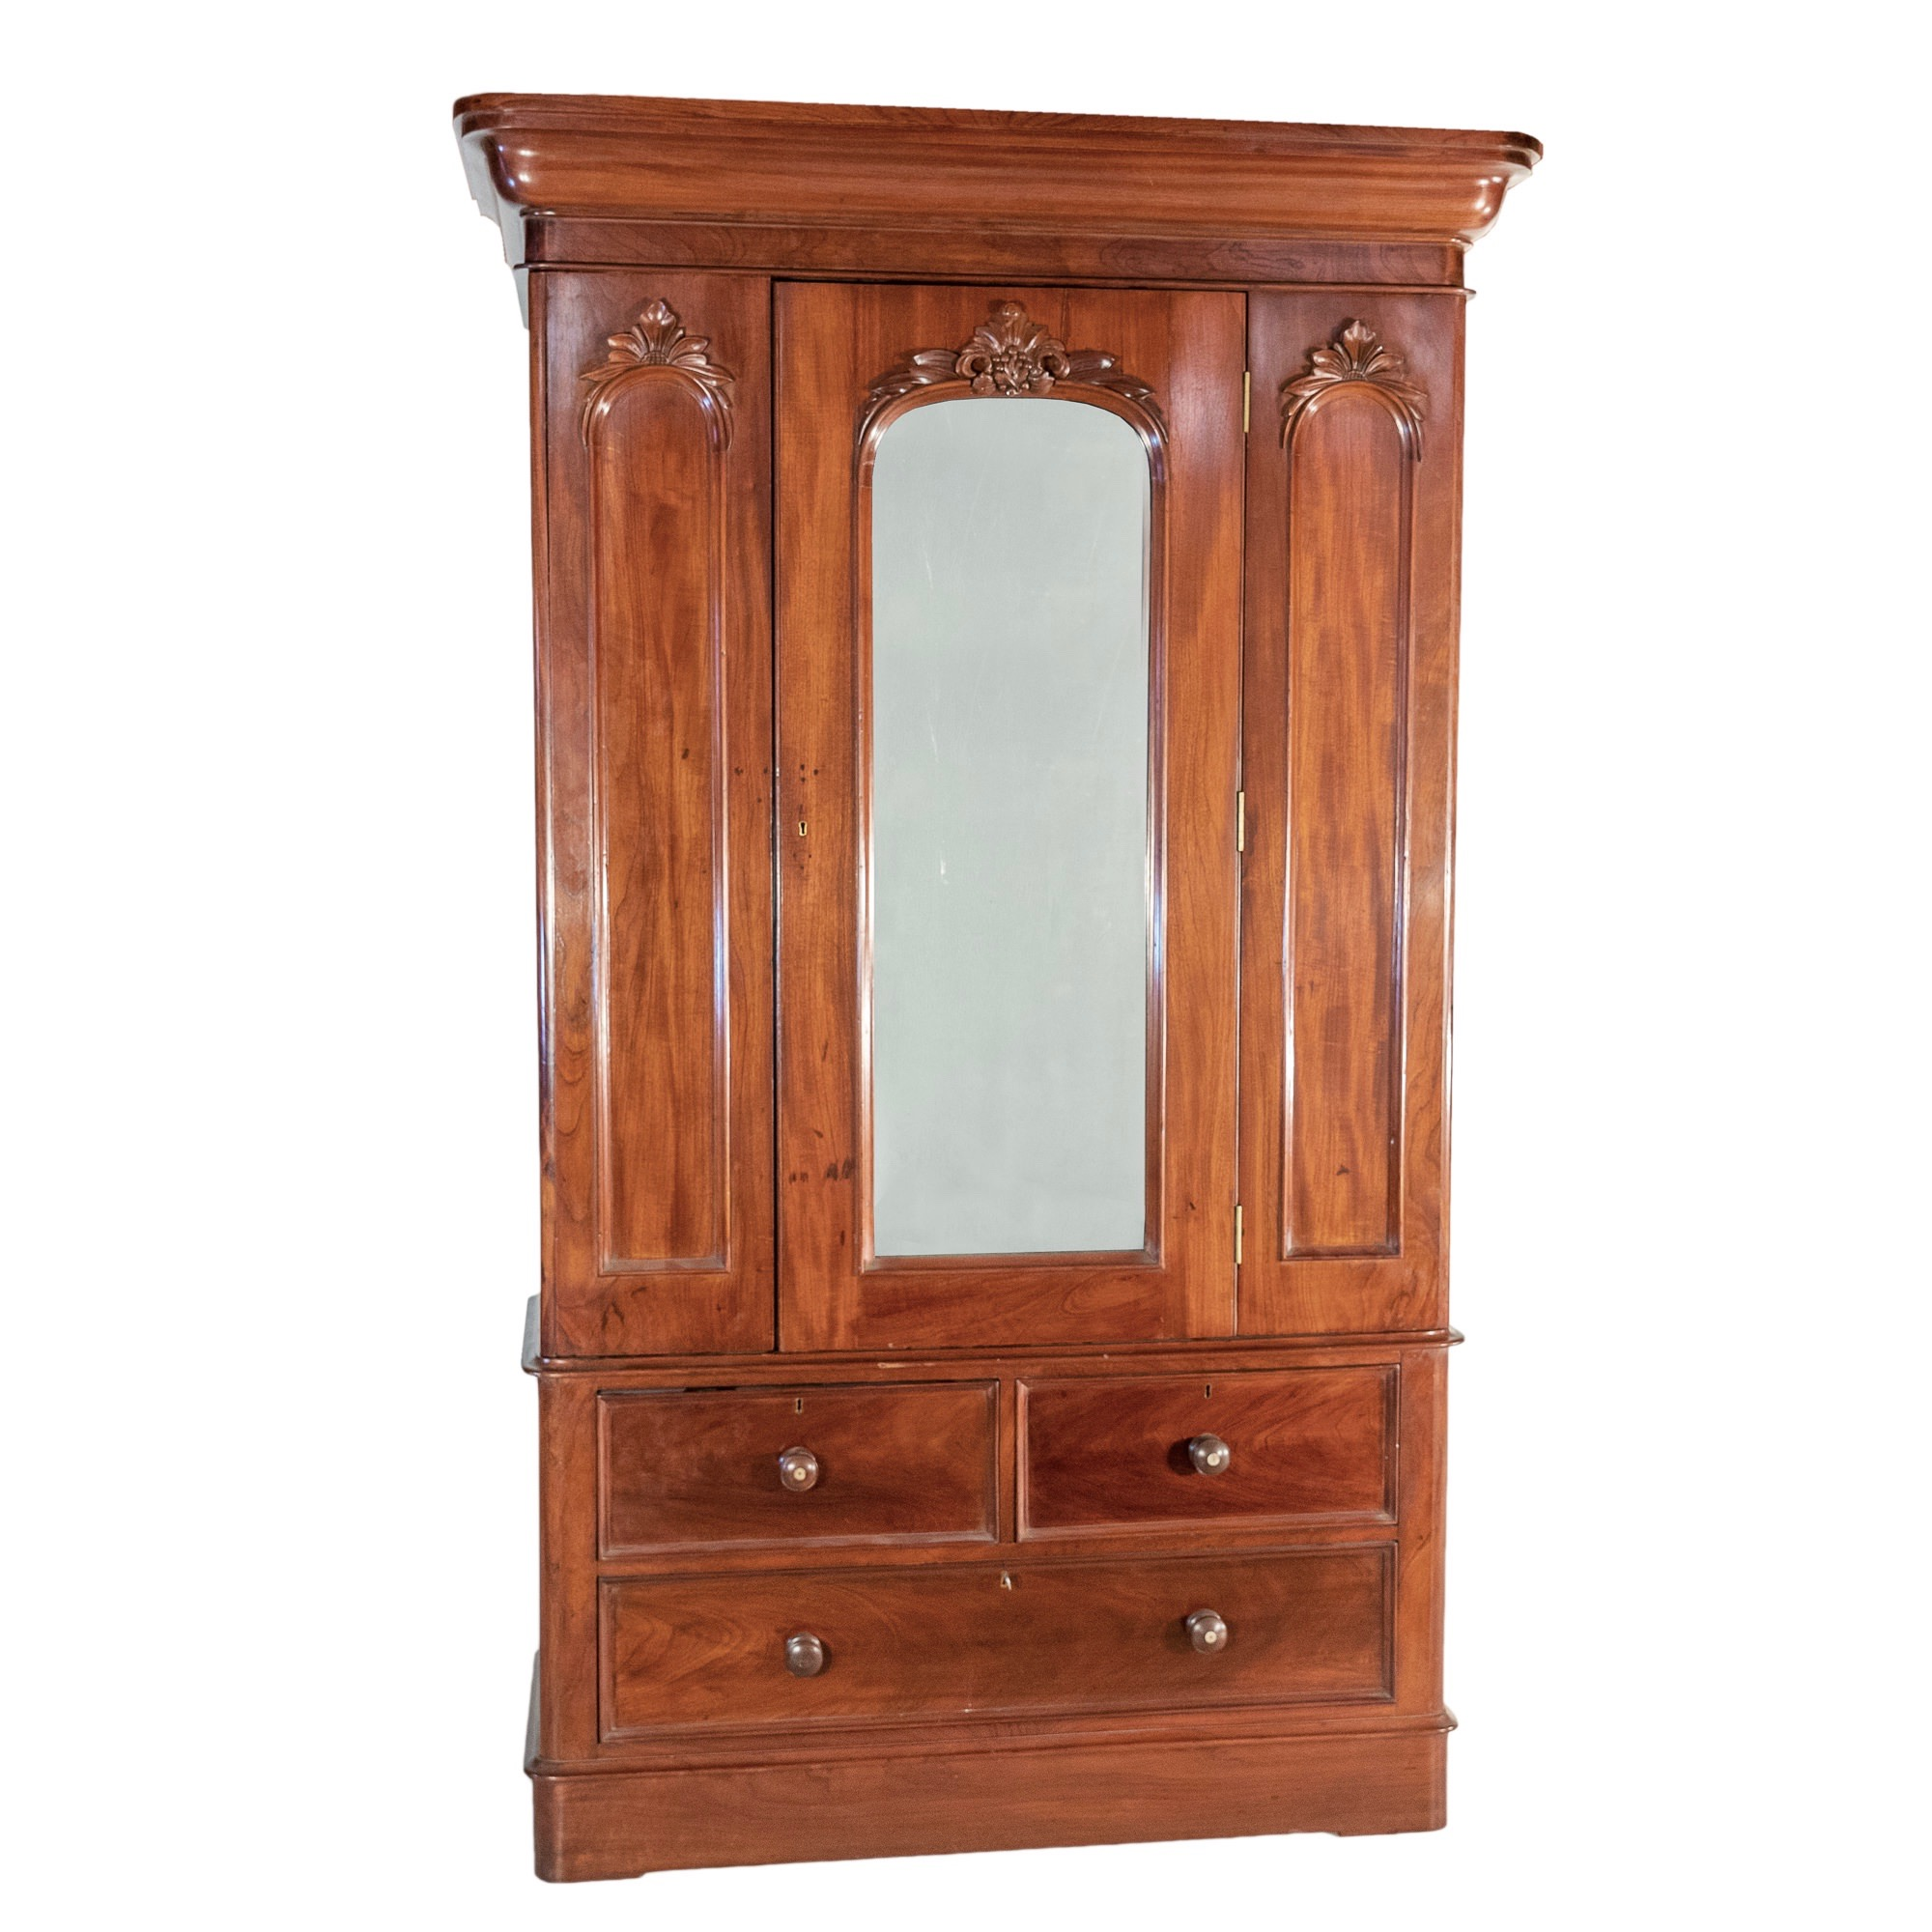 'Australian Cedar Wardrobe with Central Mirrored Panel Above Drawers Late 19th Century'